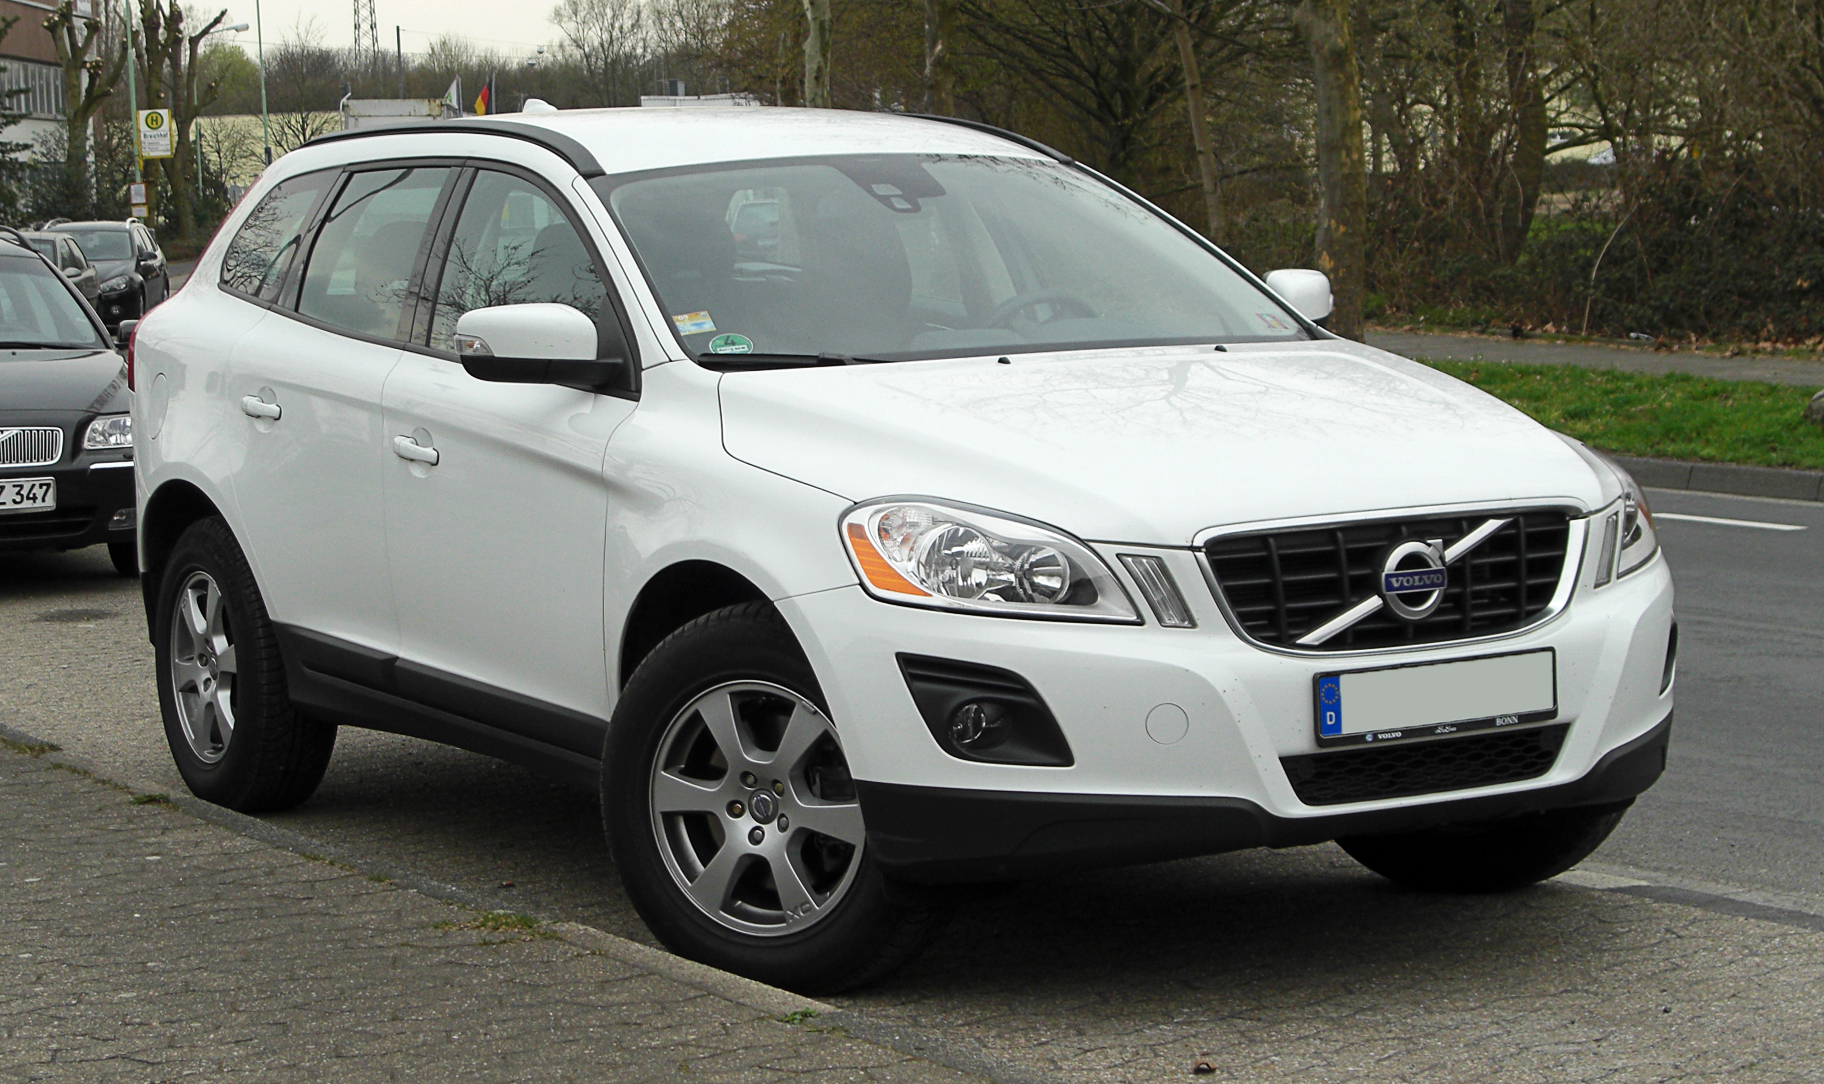 Volvo Xc60 Tractor Construction Plant Wiki Fandom Powered By Wikia